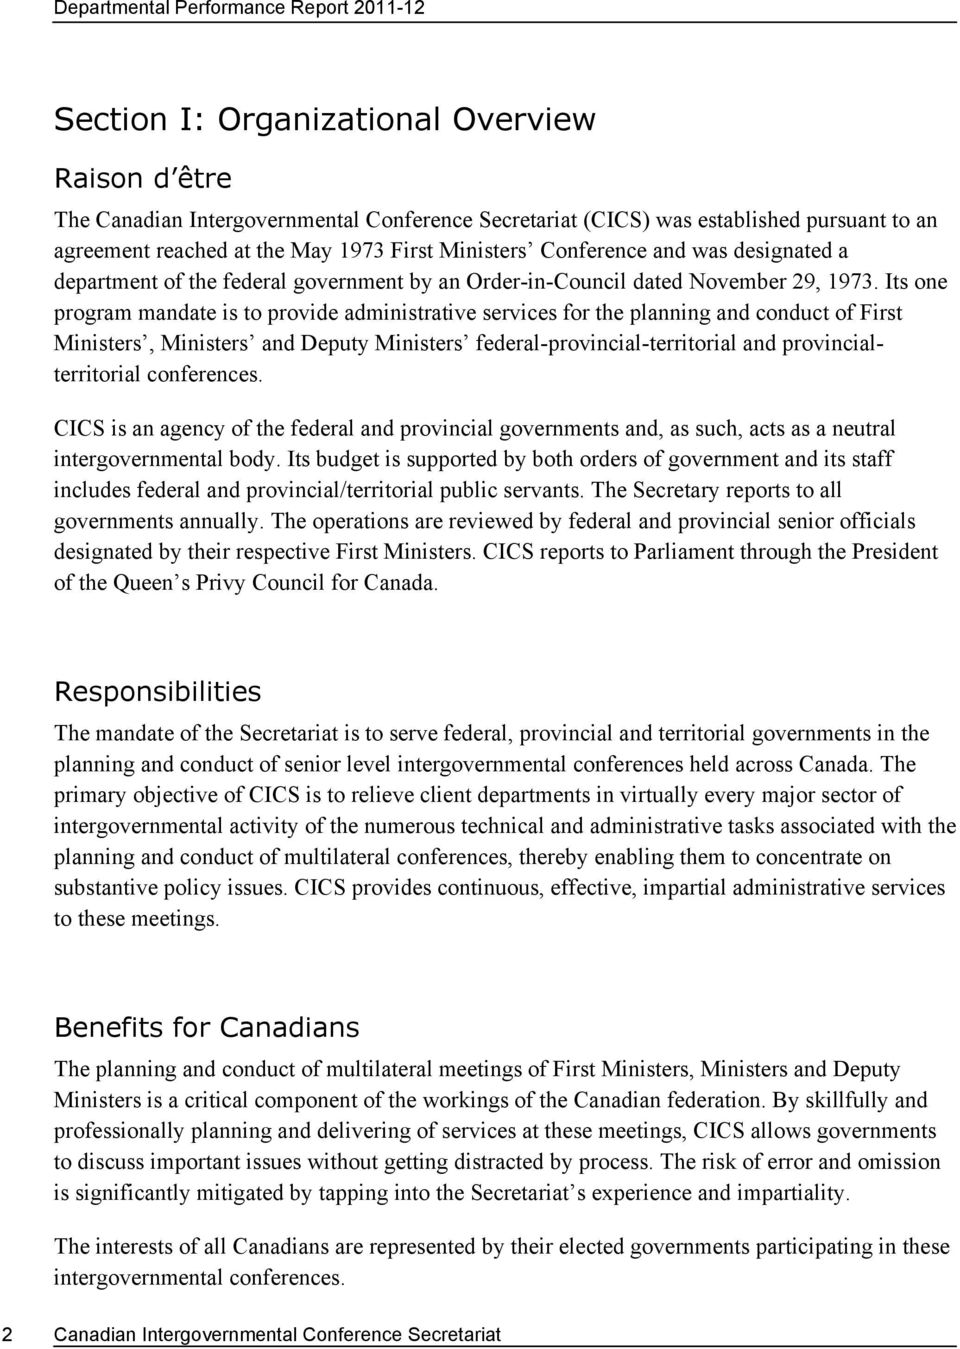 Its one program mandate is to provide administrative services for the planning and conduct of First Ministers, Ministers and Deputy Ministers federal-provincial-territorial and provincialterritorial